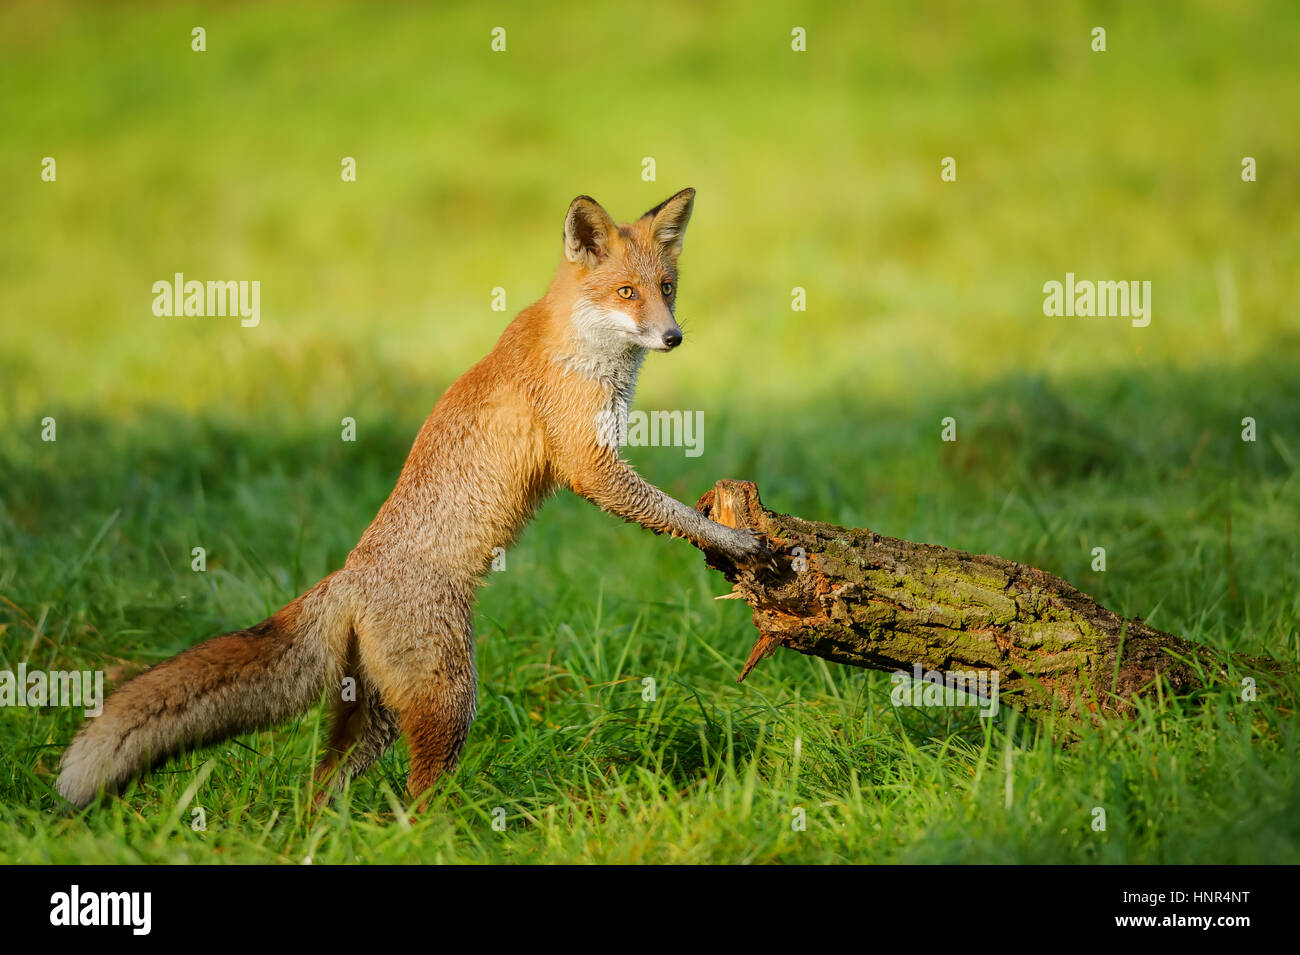 Red fox standing in green grass leaning to tree trunk in beautiful autumn sunlight - Stock Image